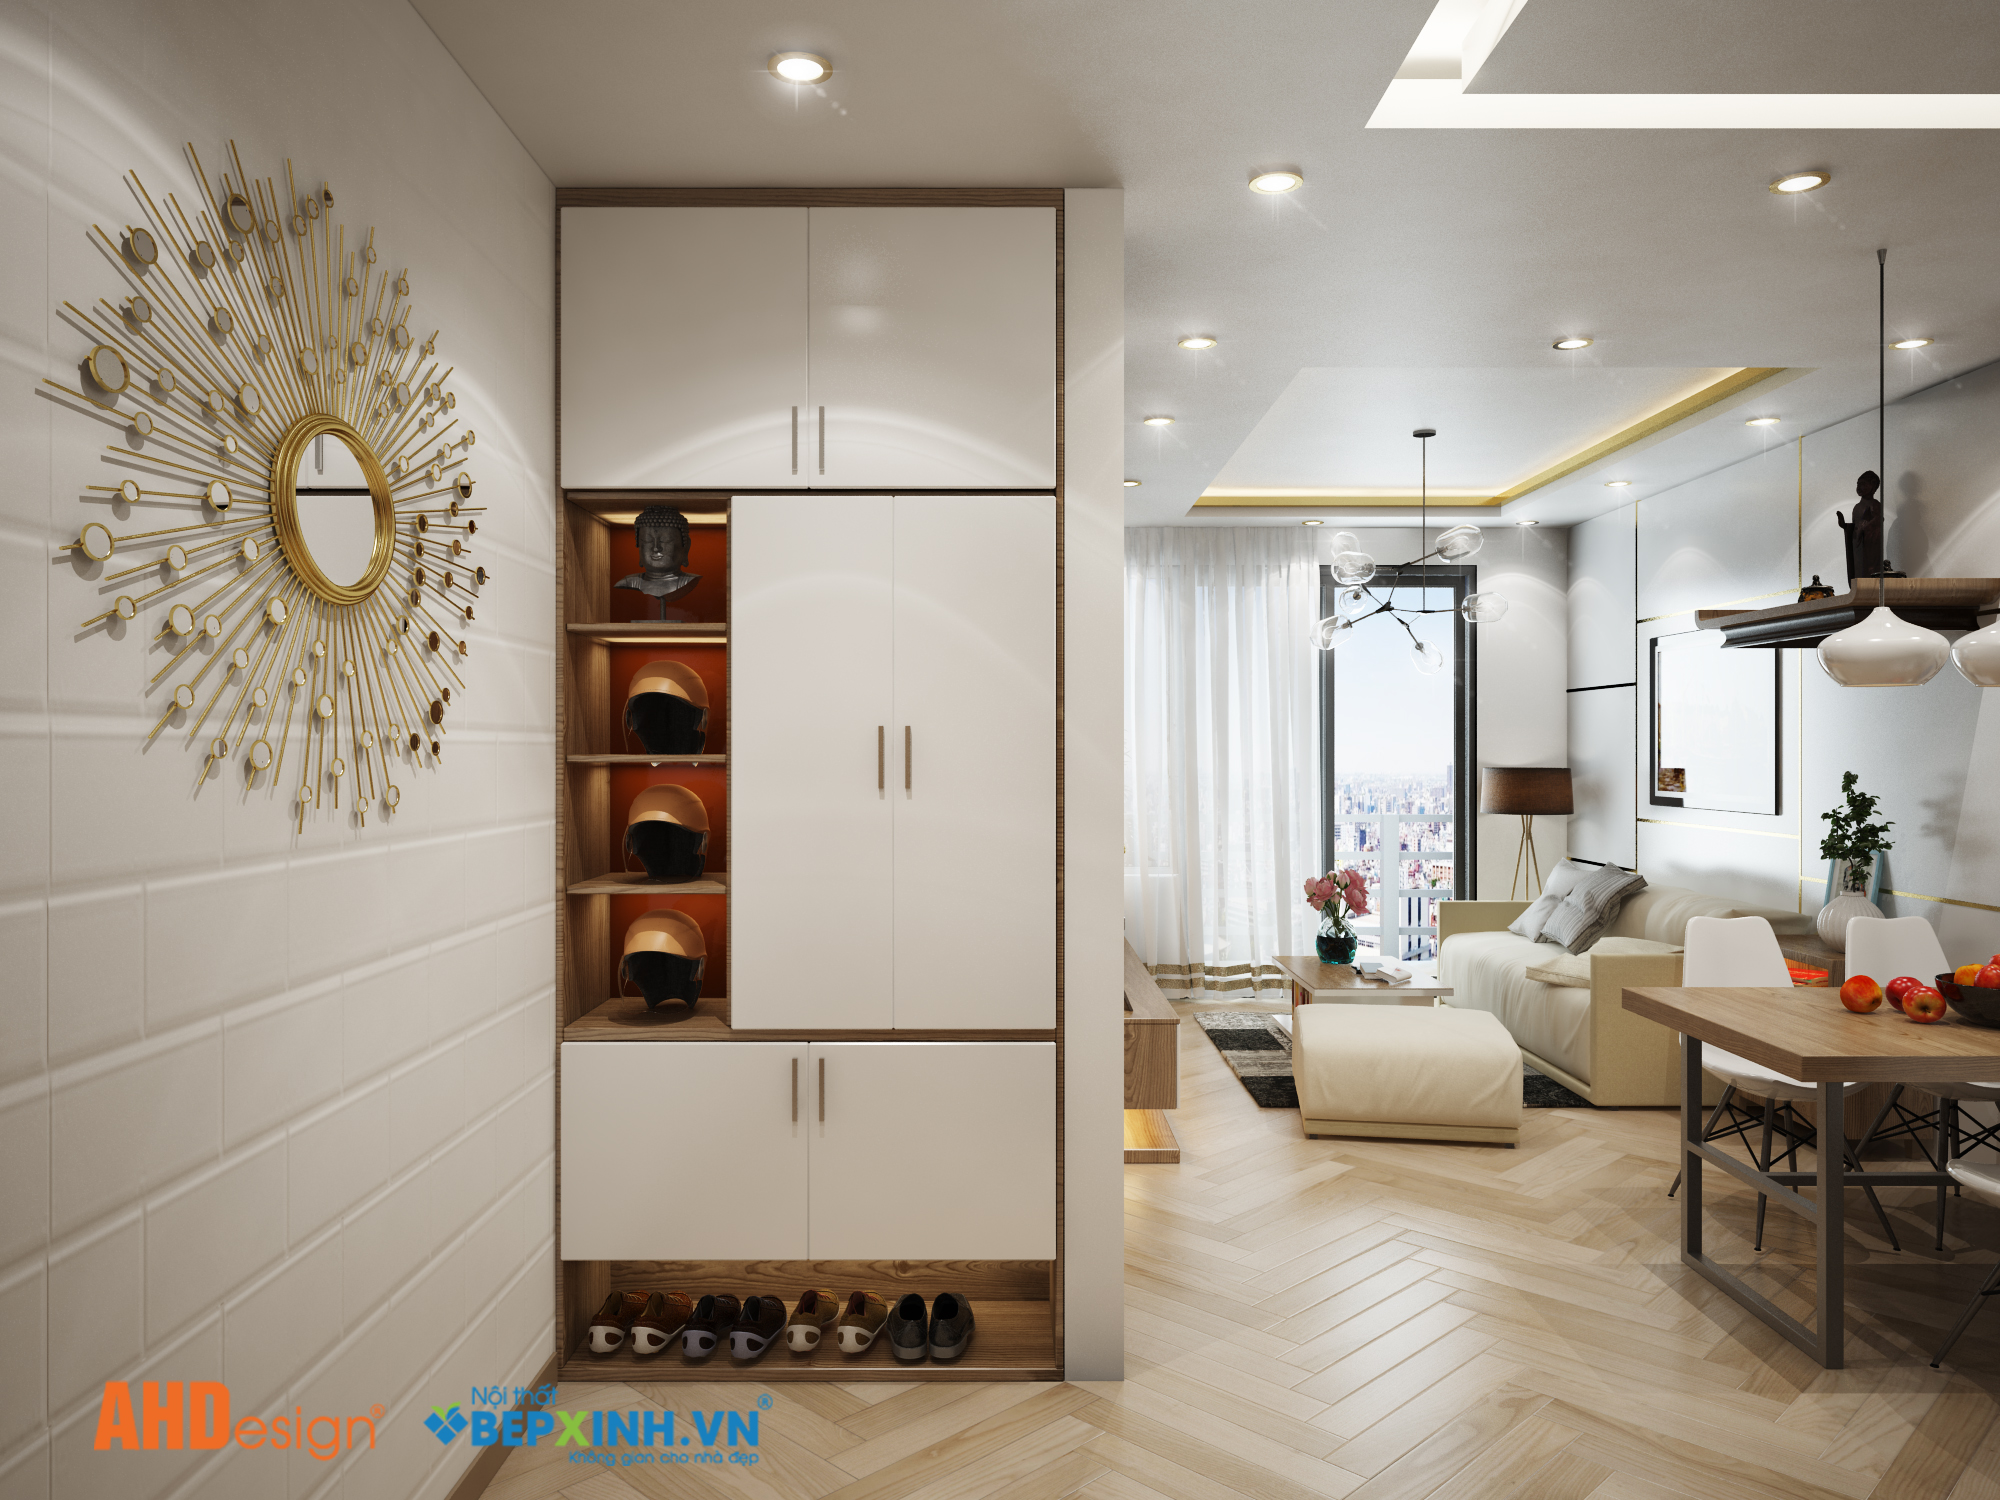 noi-that-can-ho-ecolife-75m2-khach-bep-5